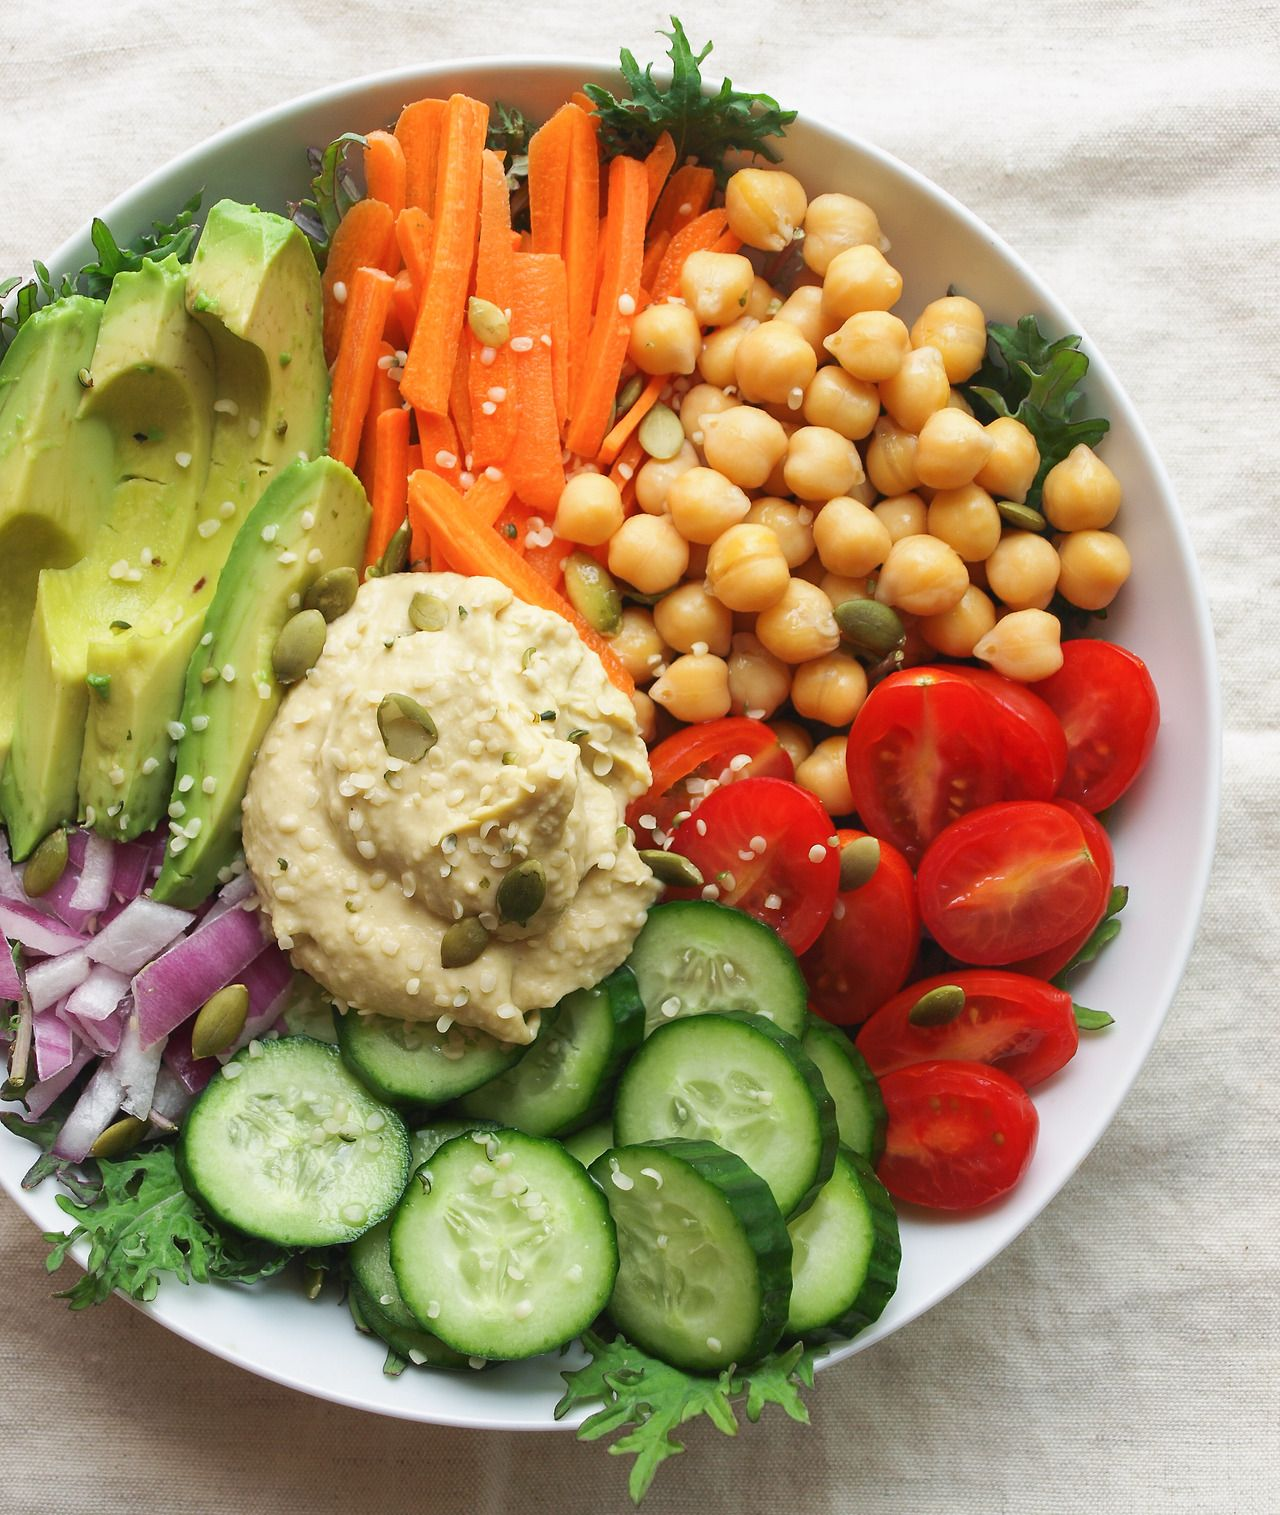 Vegan yums fithealthy pinterest vegans easy meals and meals this is your top pin in the vegan community board in april everyday nourish bowl a complete and easy meal that will nourish and revitalize you in the forumfinder Images